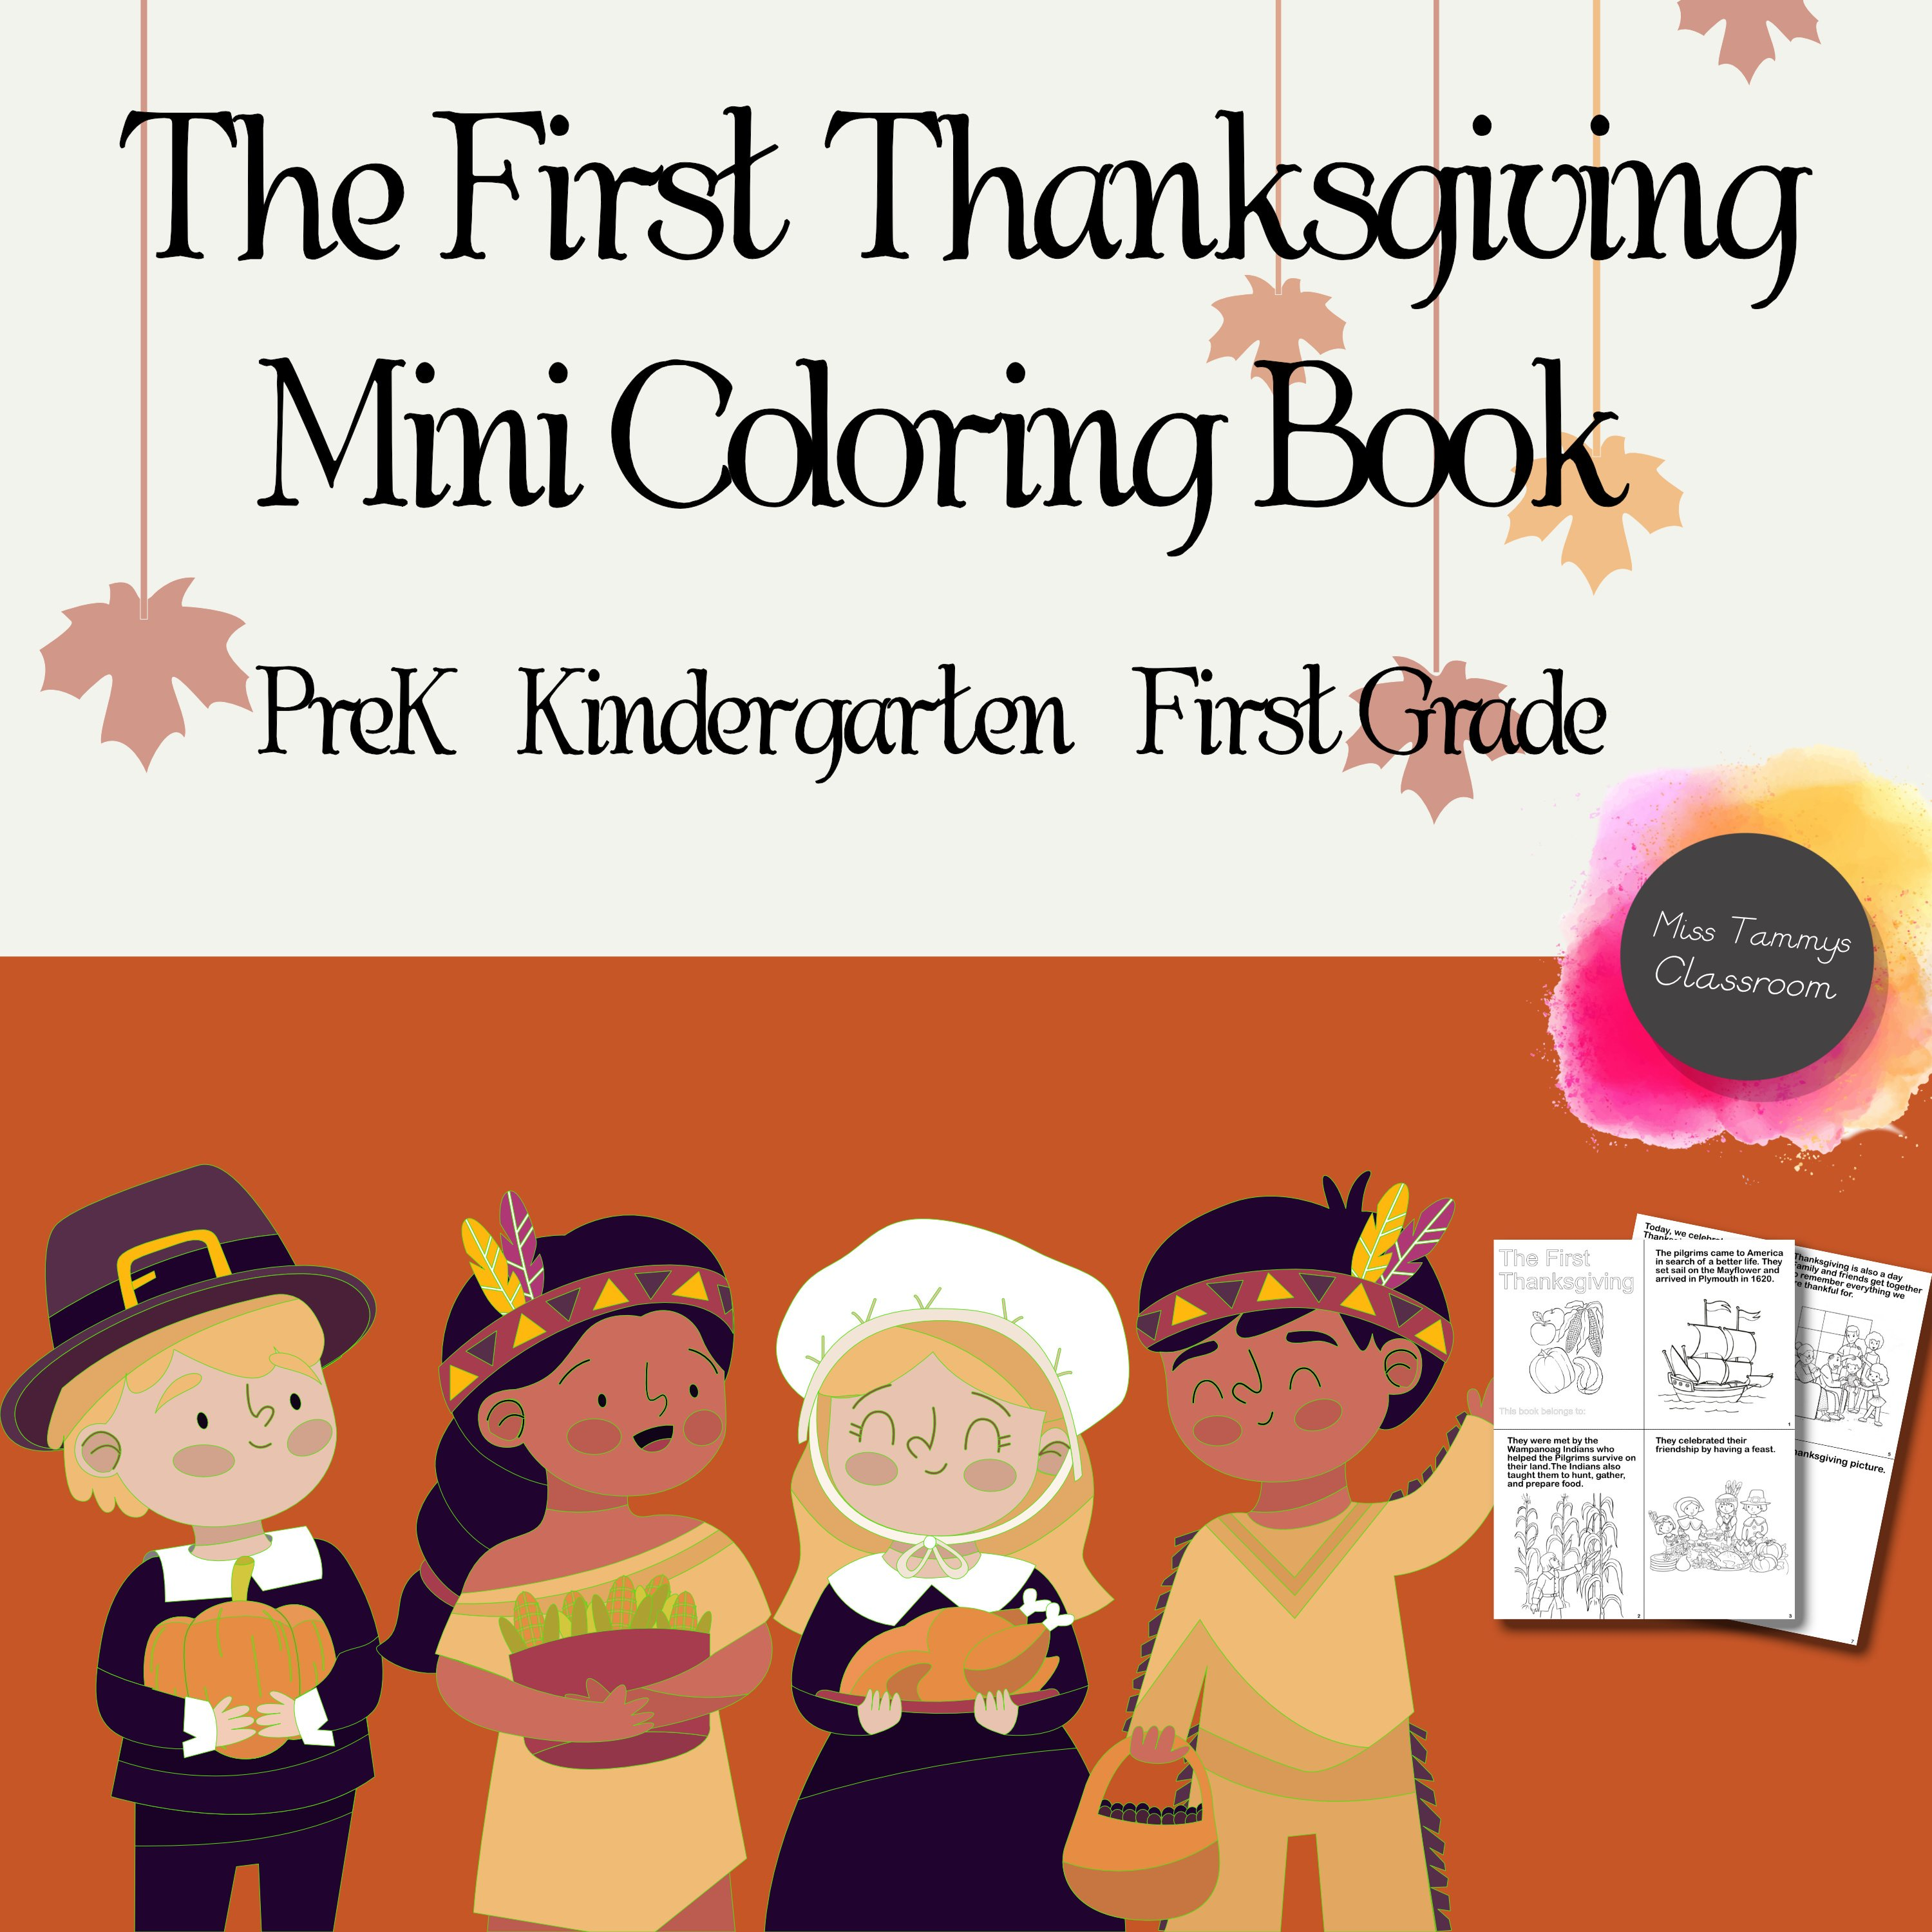 Thanksgiving Mini Book - The First Thanksgiving